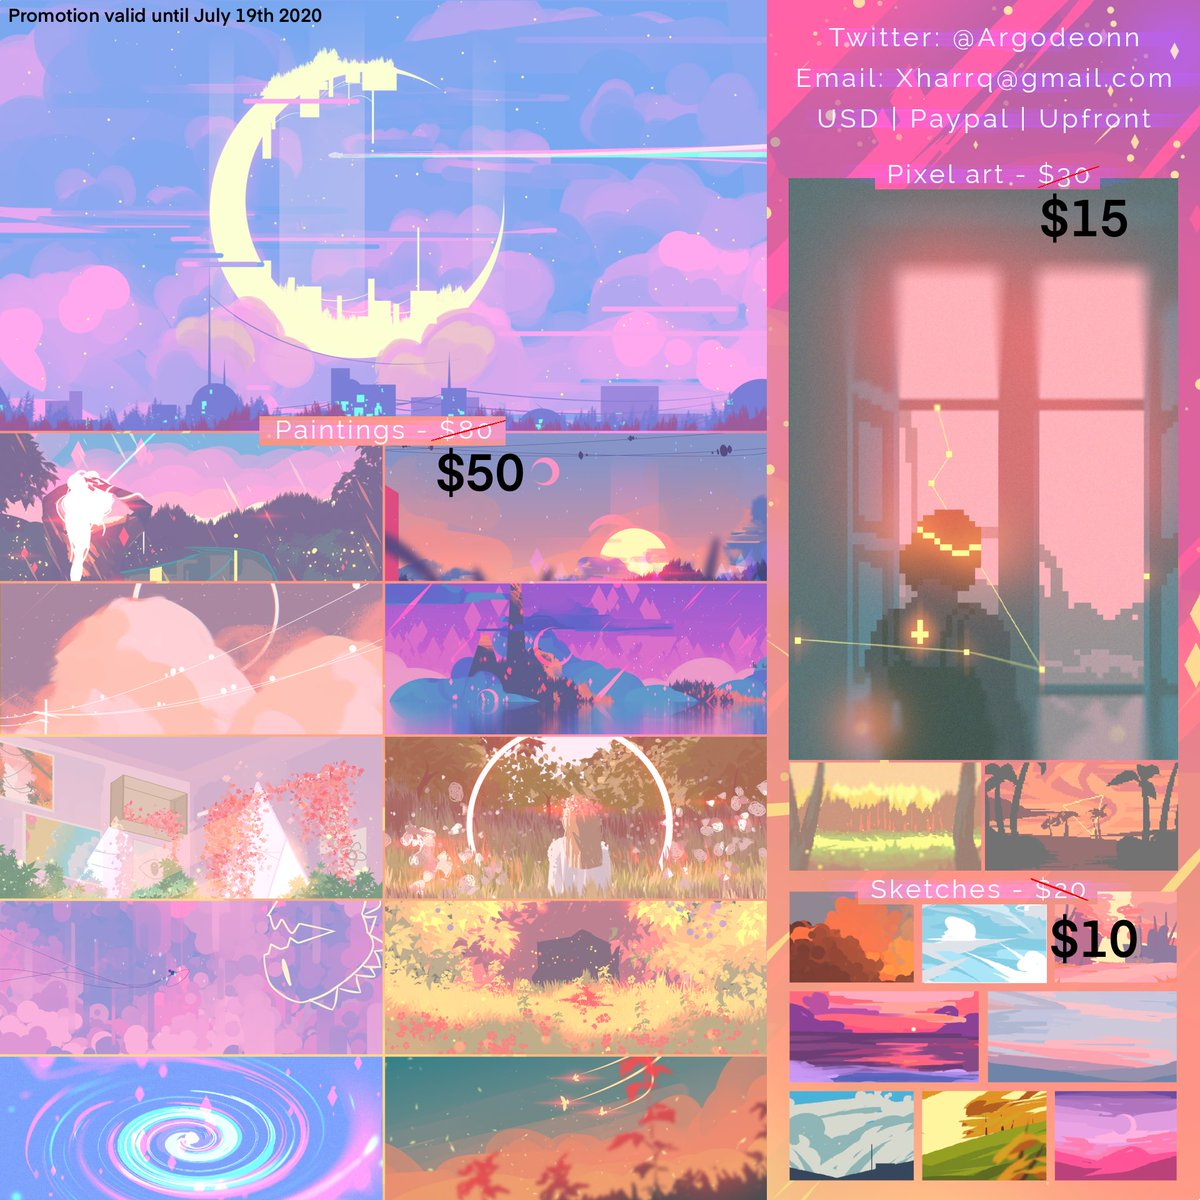 EMERGENCY ART COMMISSIONS FOR A LIMITED TIME! Me, my mom, and my autistic brother are constantly being bullied by our ableist neighborhood, so we're moving to a new place! We already covered the flight tickets. We just need $365 USD more for the rest of expenses. Pls RT ;w;